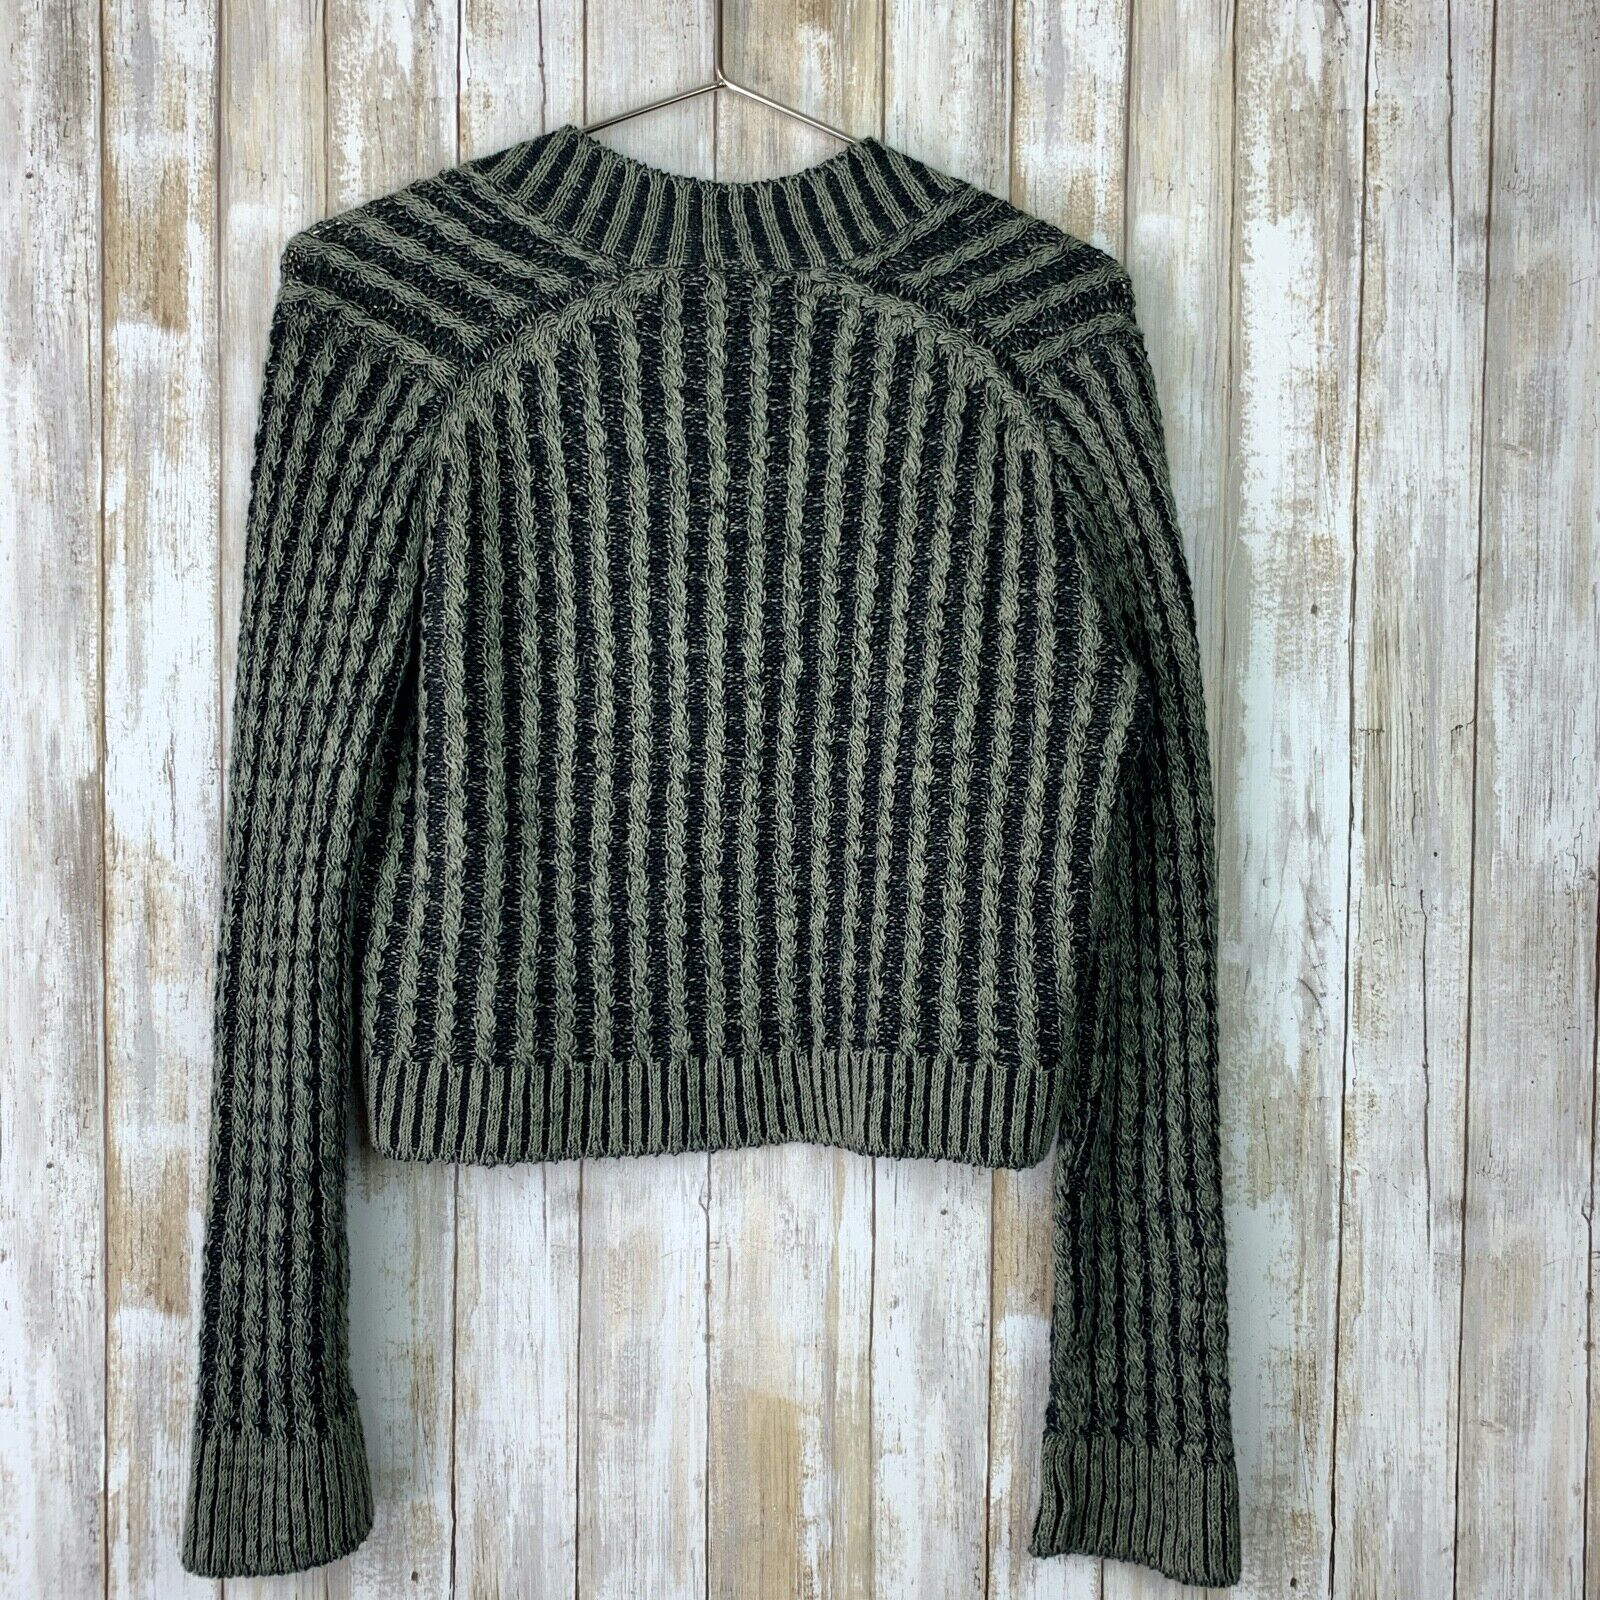 Inis Meain Linen Loose Knit Open Sweater Green Gr… - image 7